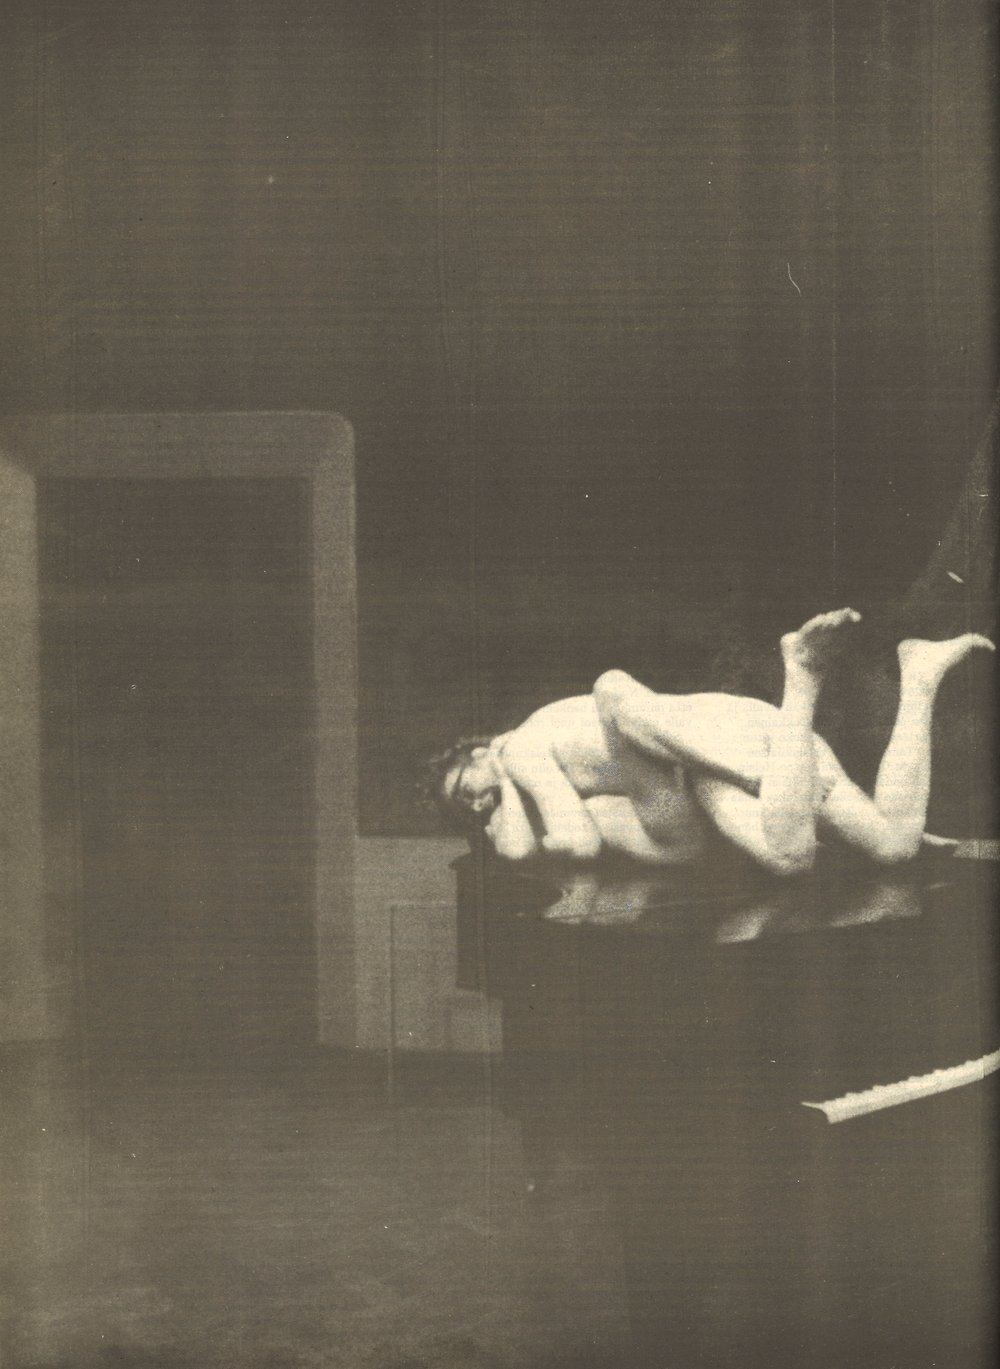 """Artistic experimentation and societal criticism grew more common in the 1960's. Mattijuhani Koponen (b. 1941) was one of the great underground visionaries of Finland back in his day. The simulated sex scene of Kain ja Abel (""""Cain and Abel""""), which was performed at the Old Student House on December 2, 1968, resulted in an eight-month prison sentence for the artist.      Image: Ylioppilaslehti 9/1985 (cropped)"""